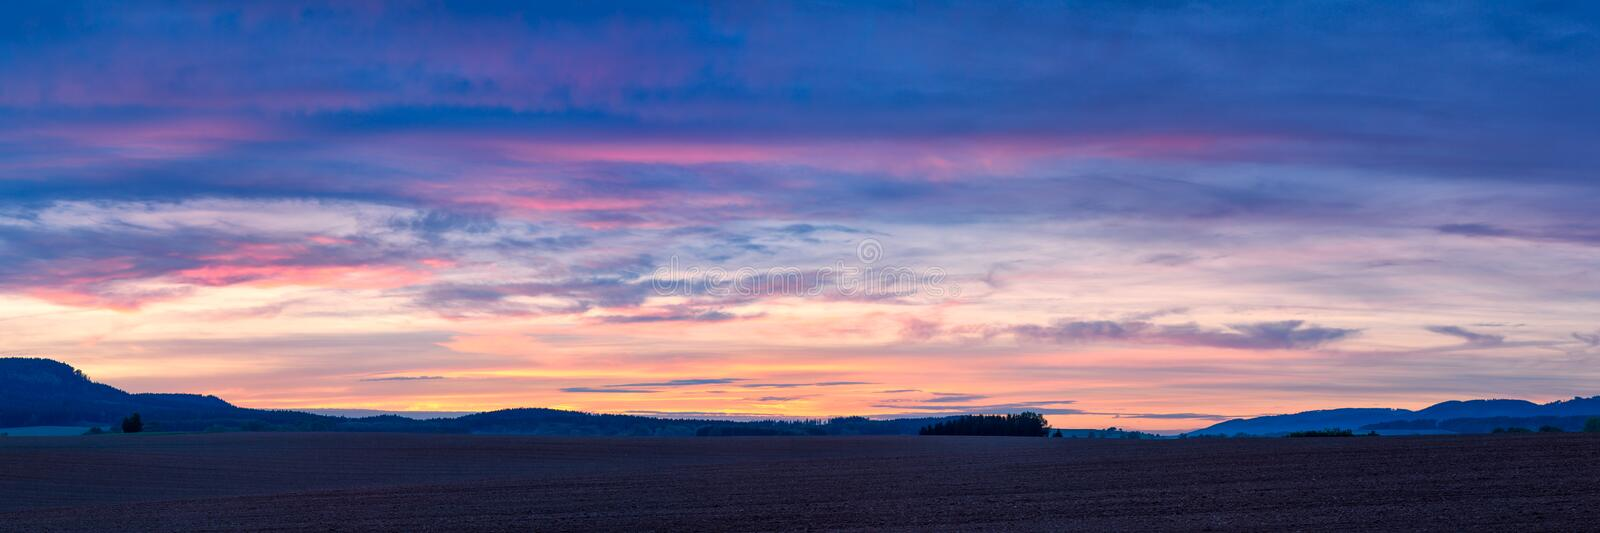 Colorful sunset over plowed fields in Northern Bohemia in the Czech Republic royalty free stock photography